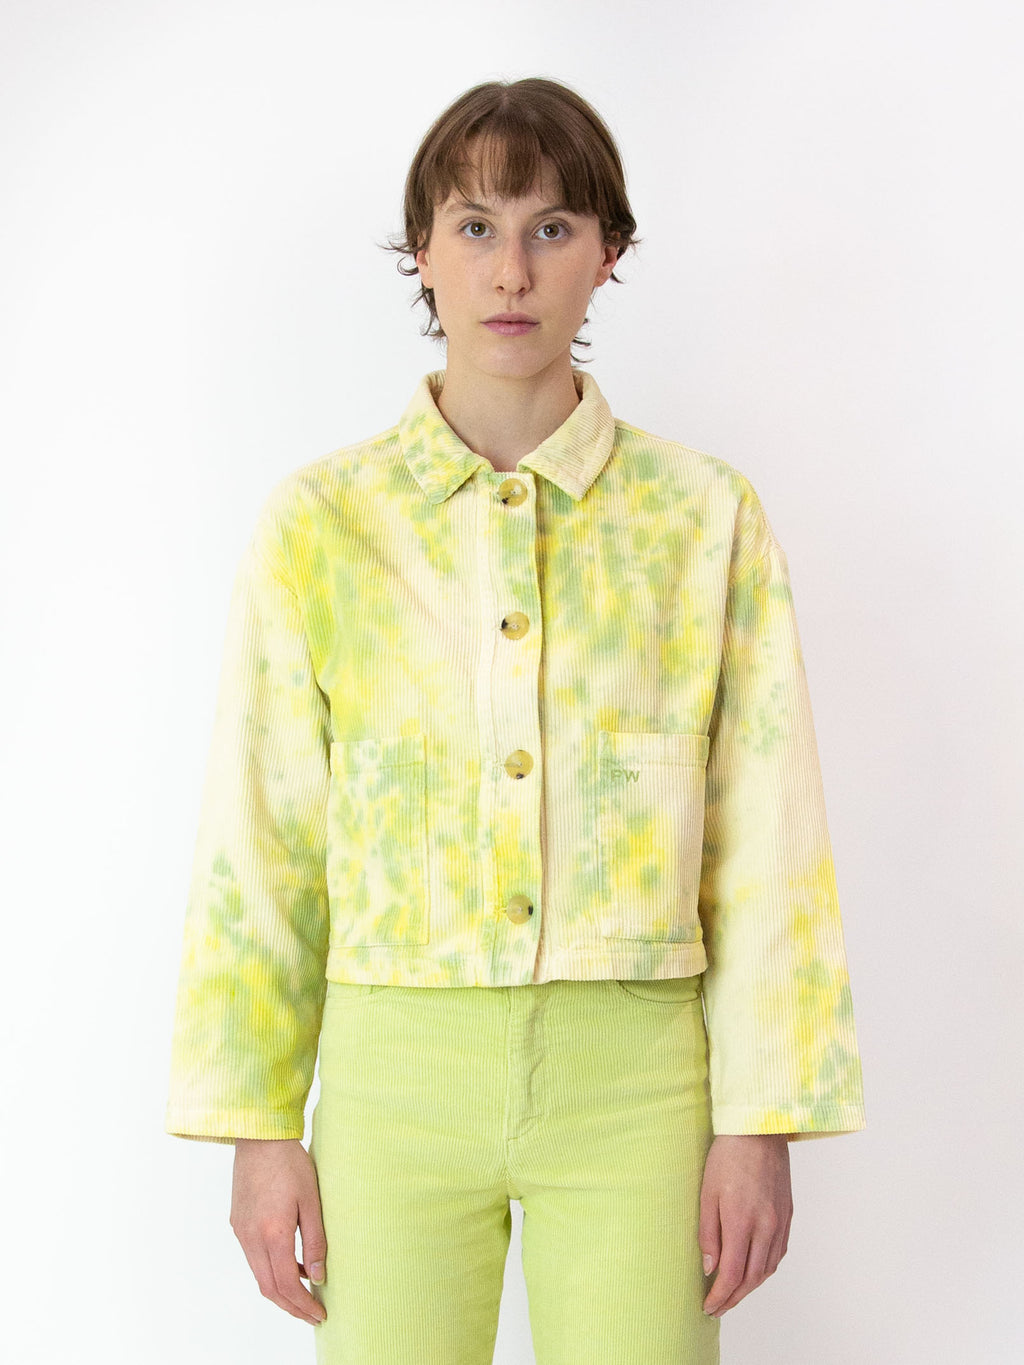 PALOMA WOOL Lu Corduroy TIe-Dye Jacket - Dark Yellow